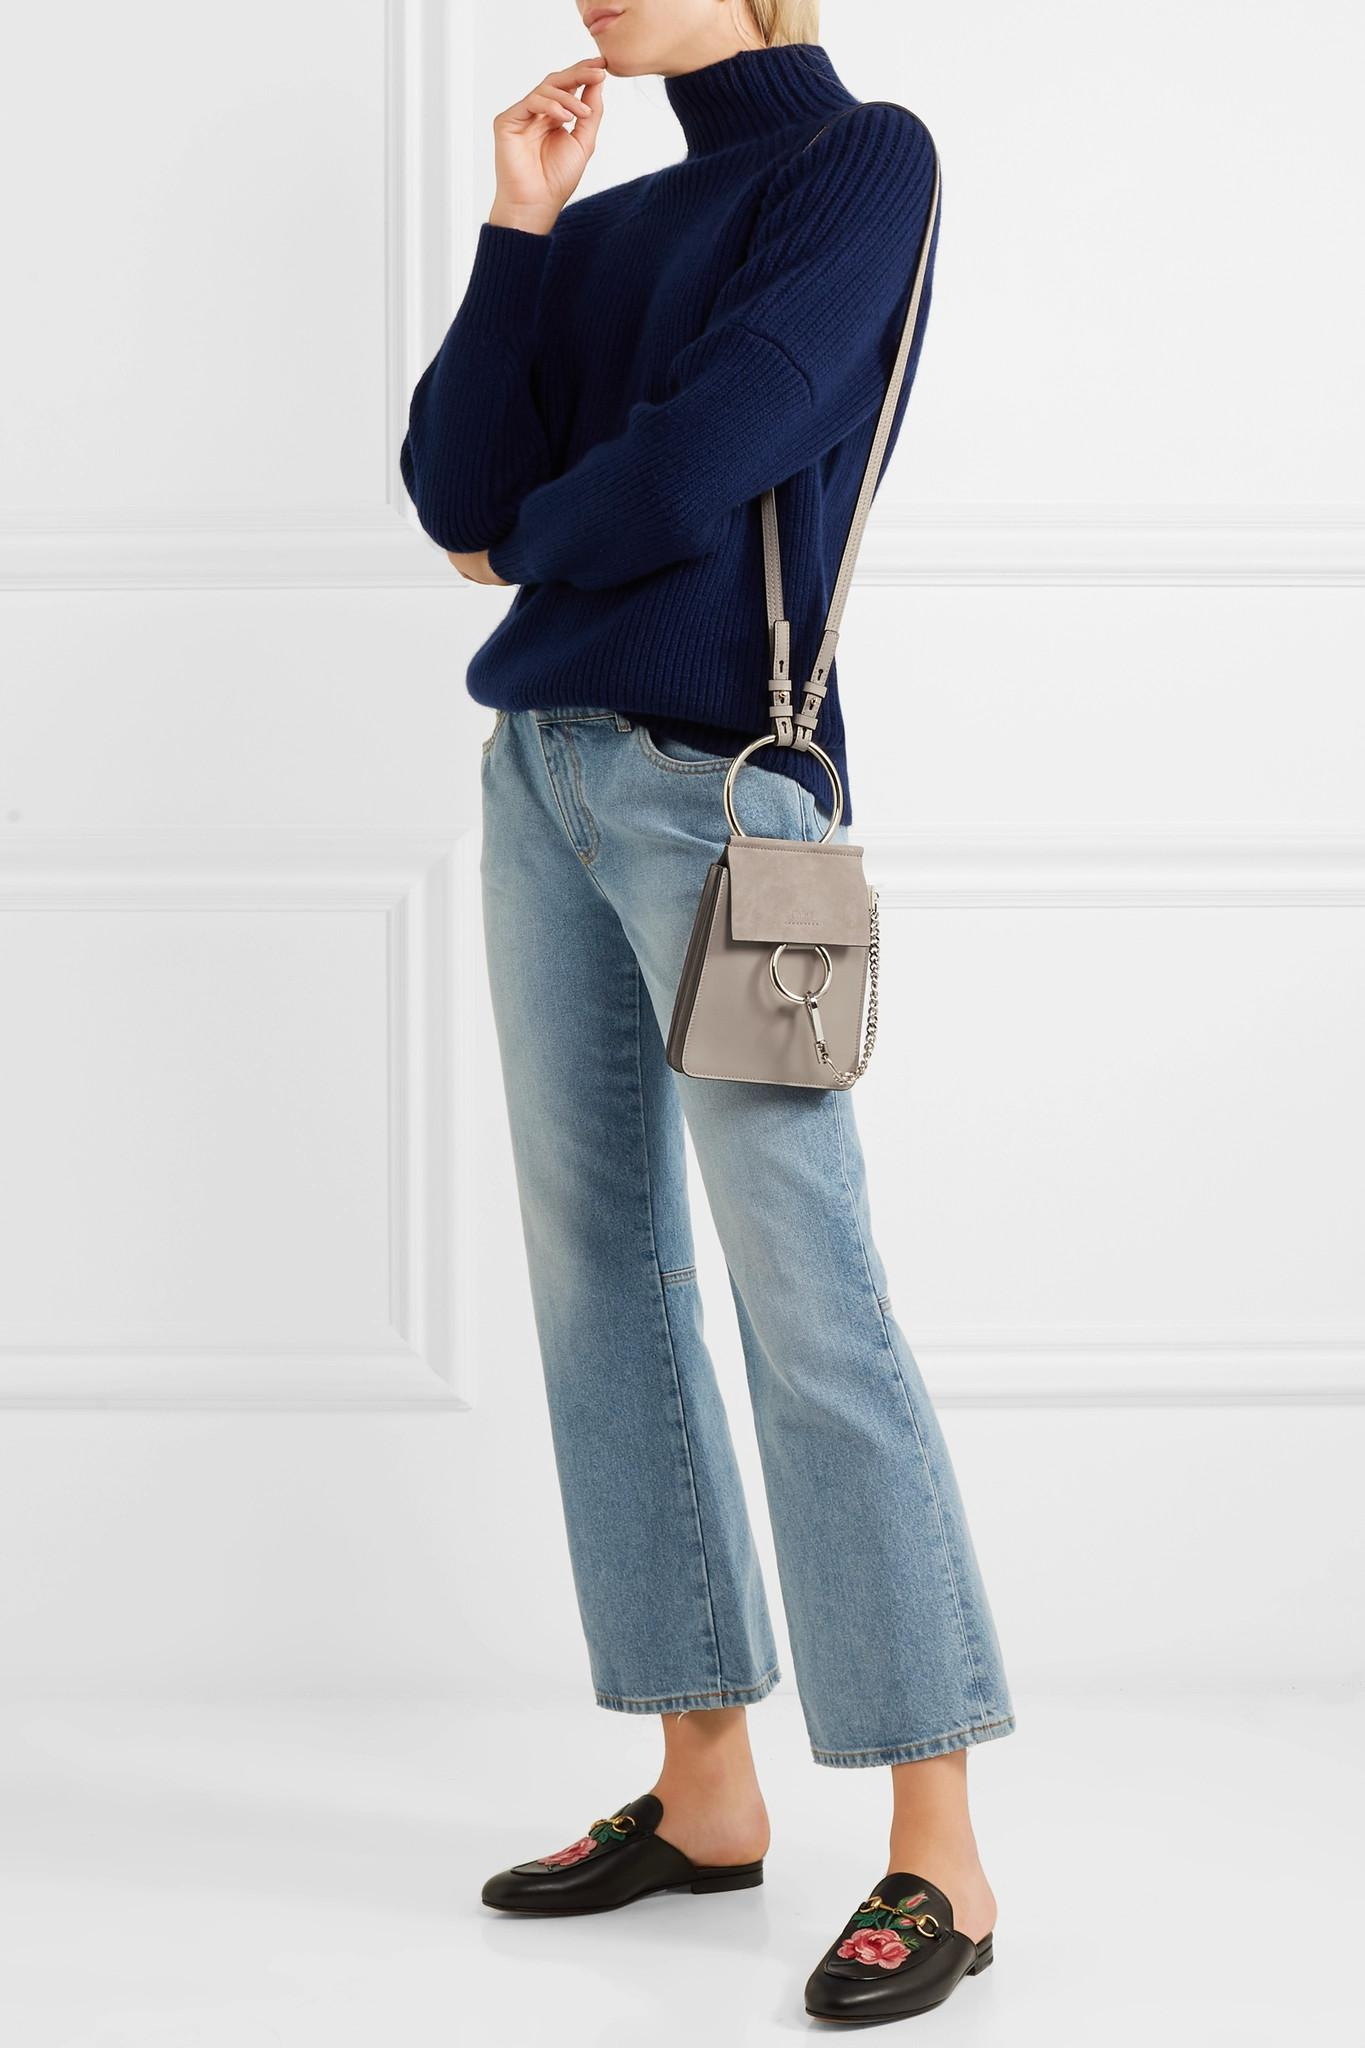 a65a5e25c80f5 Lyst - Chloé Faye Bracelet Mini Leather And Suede Shoulder Bag in Gray